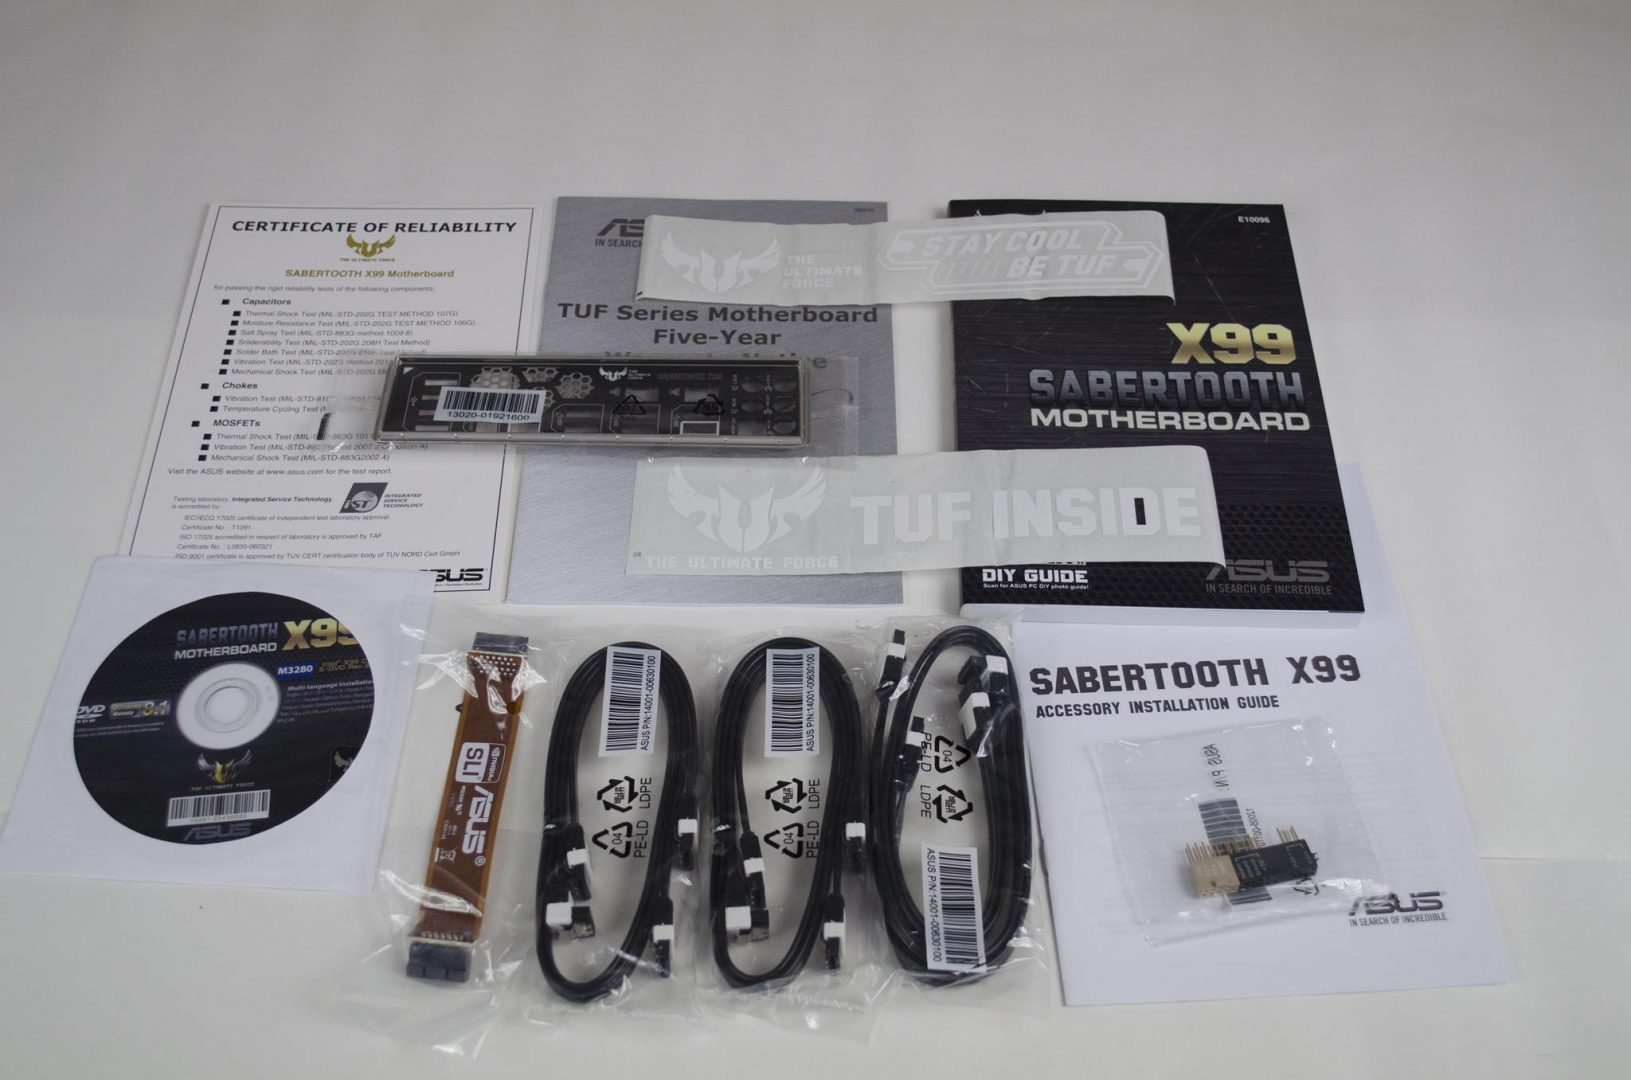 ASUS X99 Savertooth Motherboard Review_3